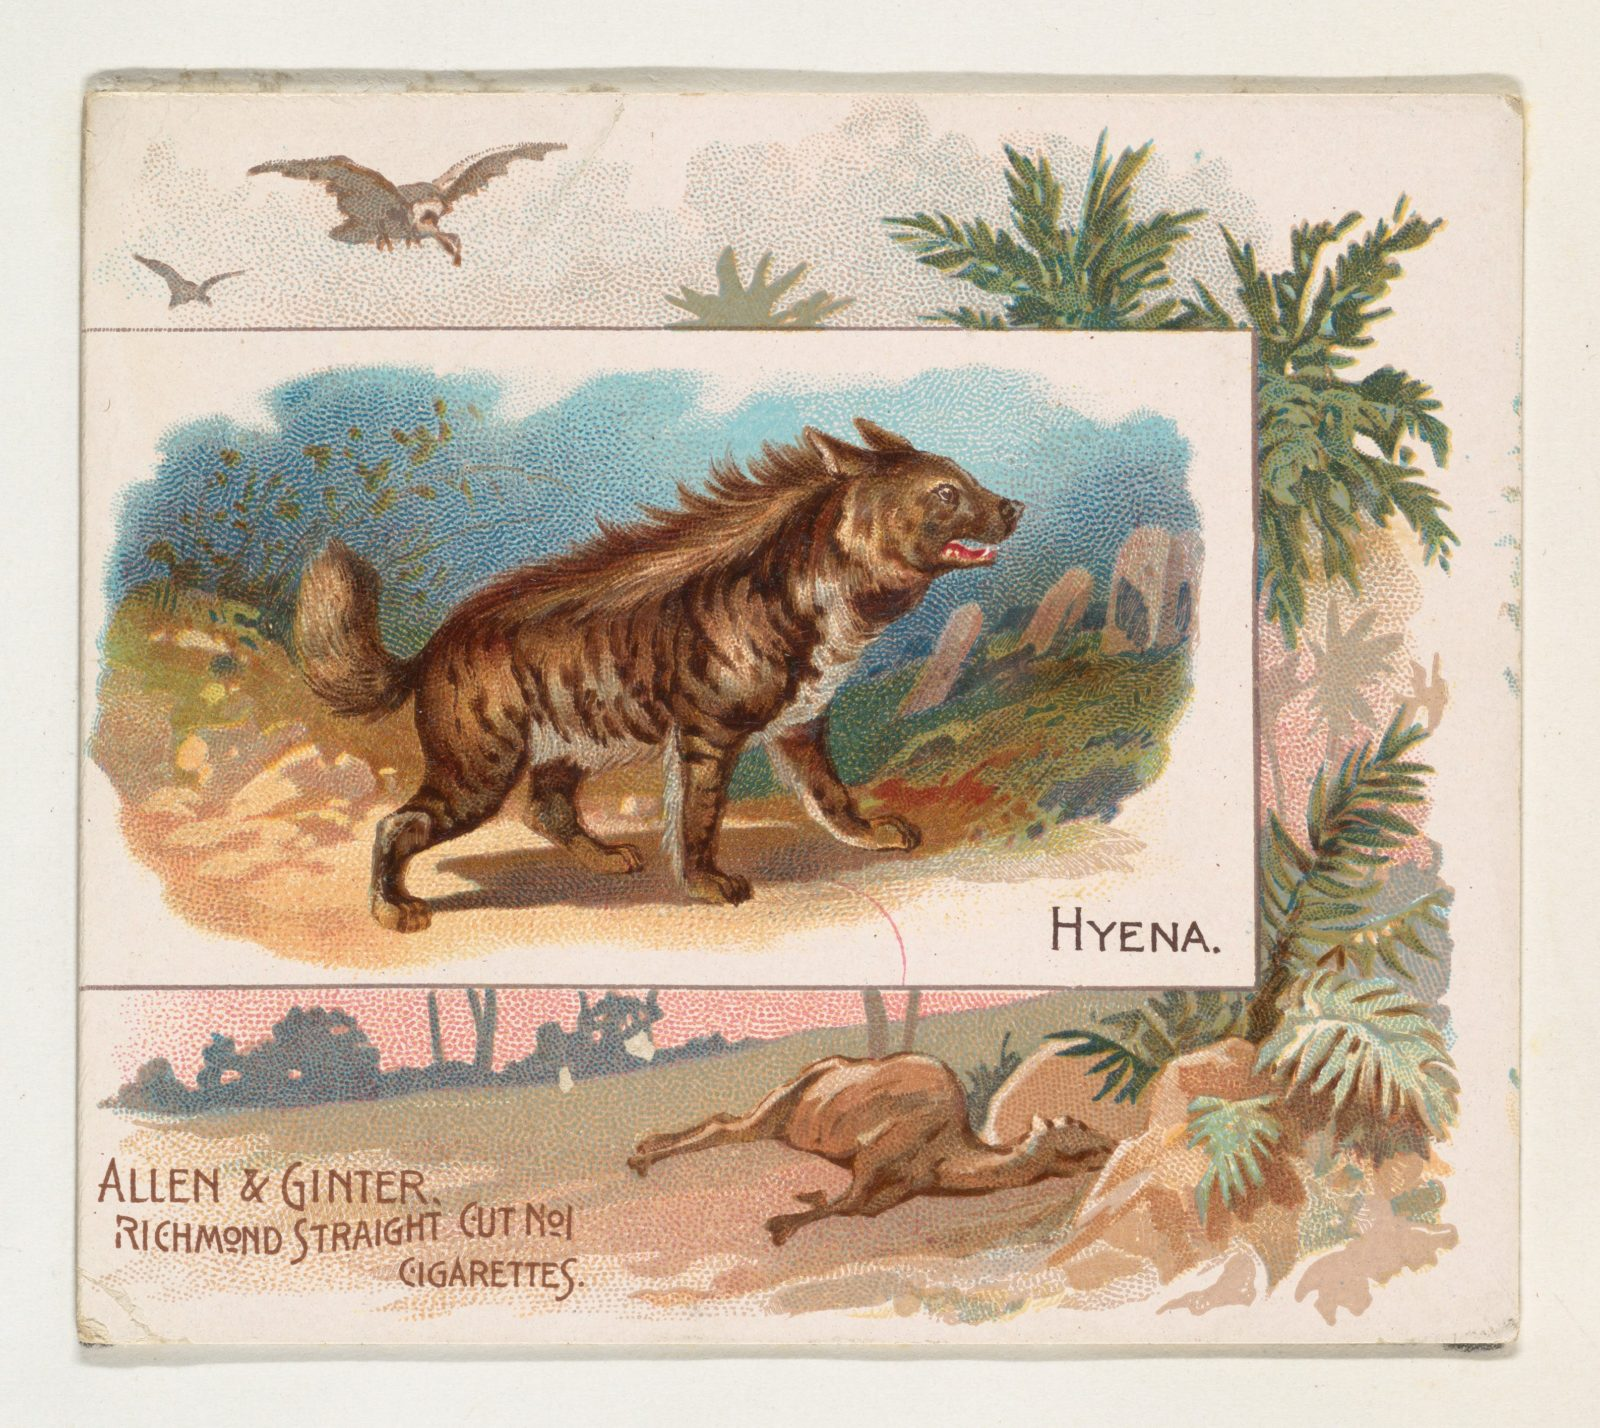 Hyena, from Quadrupeds series (N41) for Allen & Ginter Cigarettes